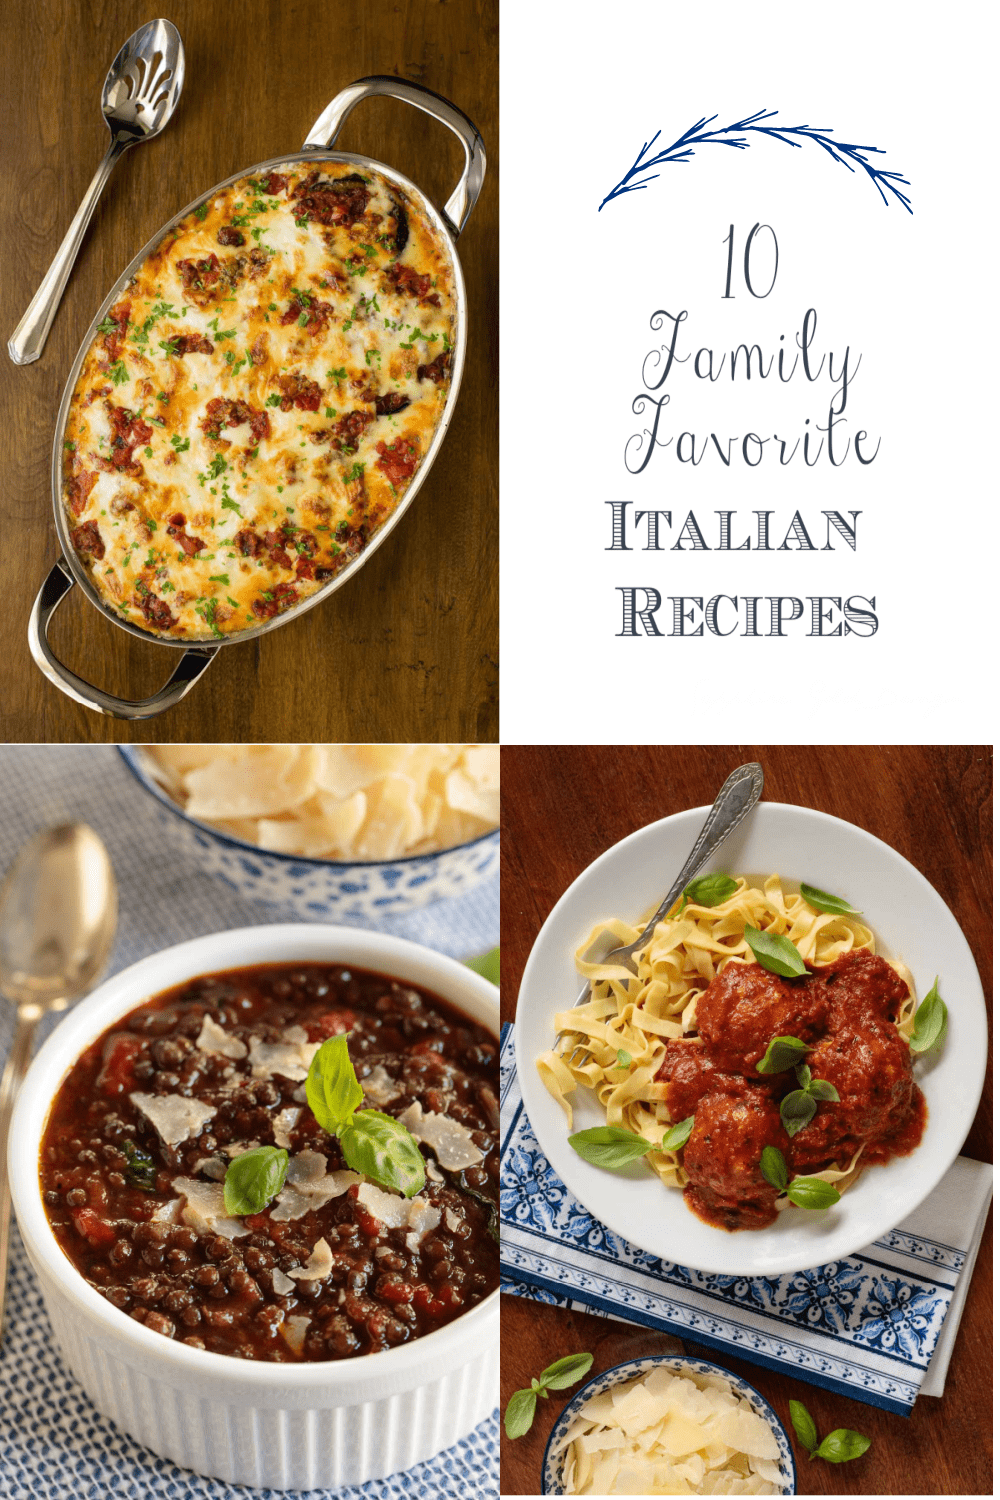 A Taste Trip to Italy from Home - 10 Great Italian Recipes!